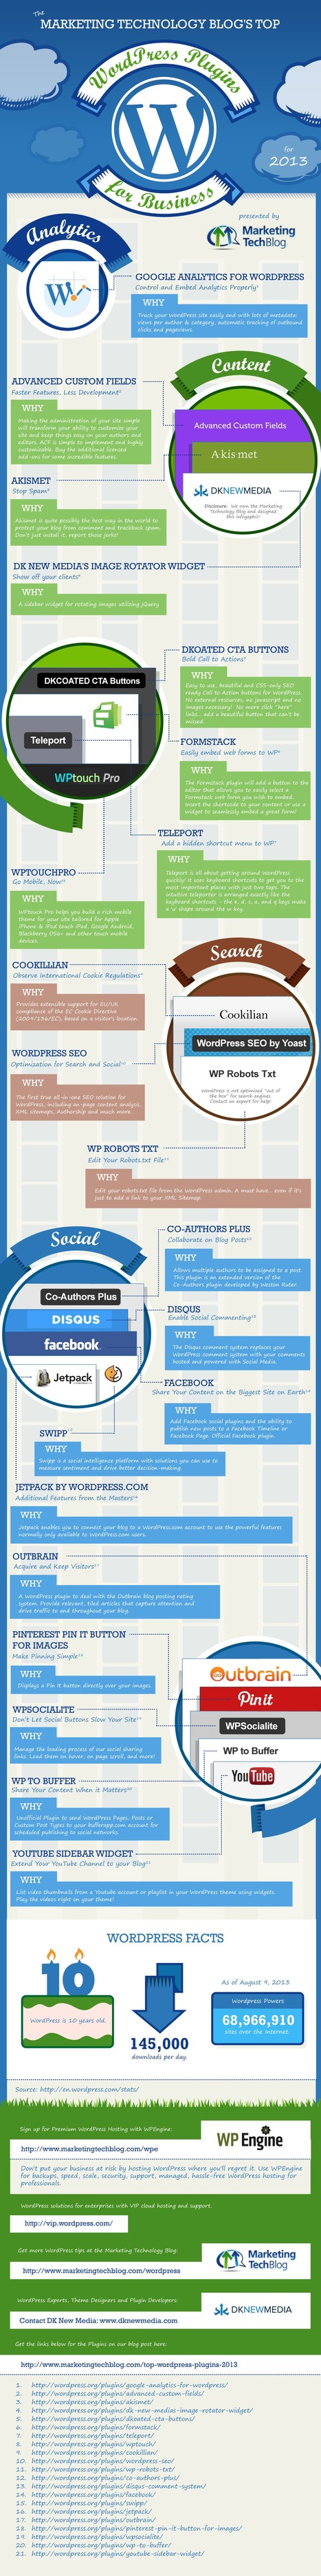 Infographic: 2013 Top WordPress Plugins for Business - Marketing Technology Blog | #TheMarketingAutomationAlert | Blogging | Scoop.it